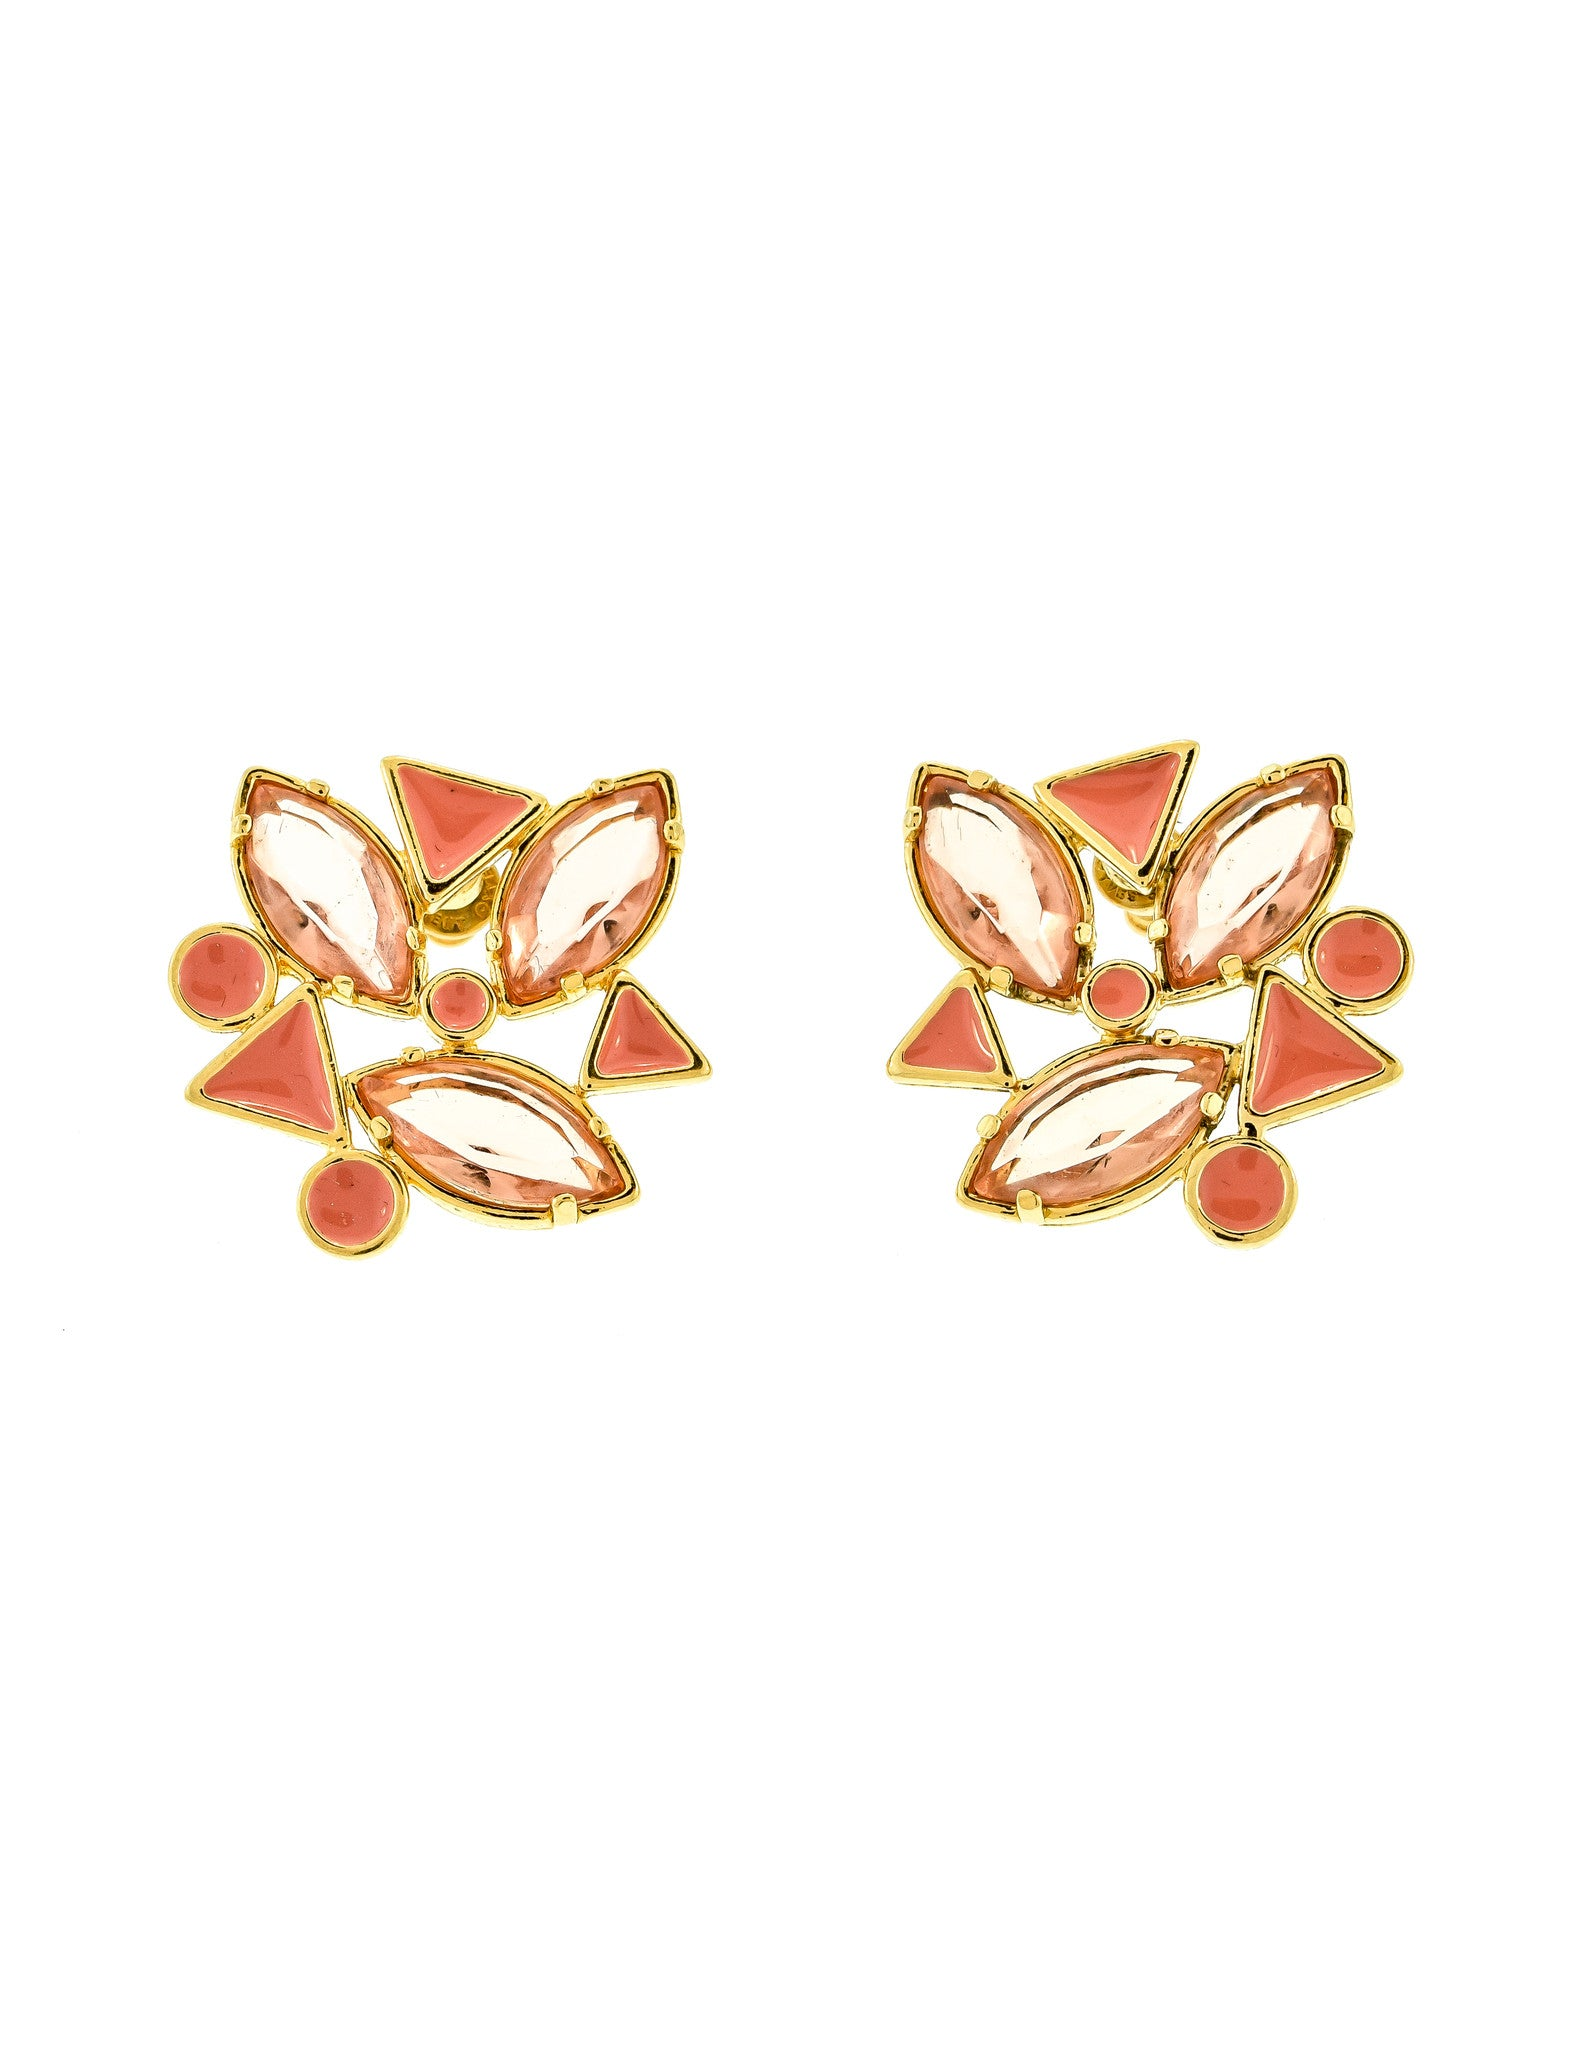 YSL Vintage Pink Enamel Rhinestone Geometric Earrings - Amarcord Vintage Fashion  - 1